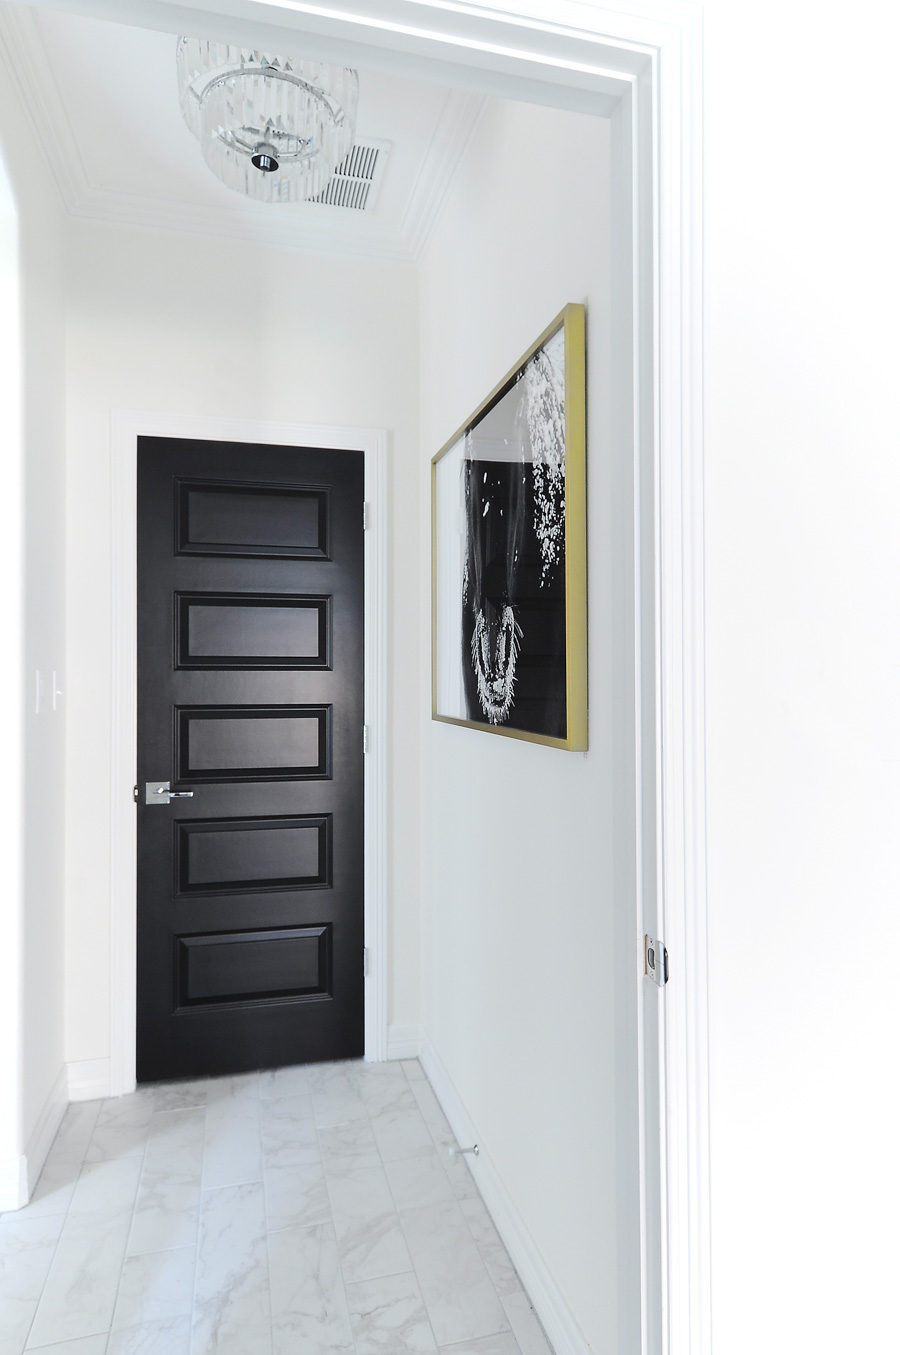 Black interior doors make a bold statement against white walls in this modern home with traditional  sc 1 st  Monica Wants It & Living with Black Interior Doors: 6 Month Update - Monica Wants It